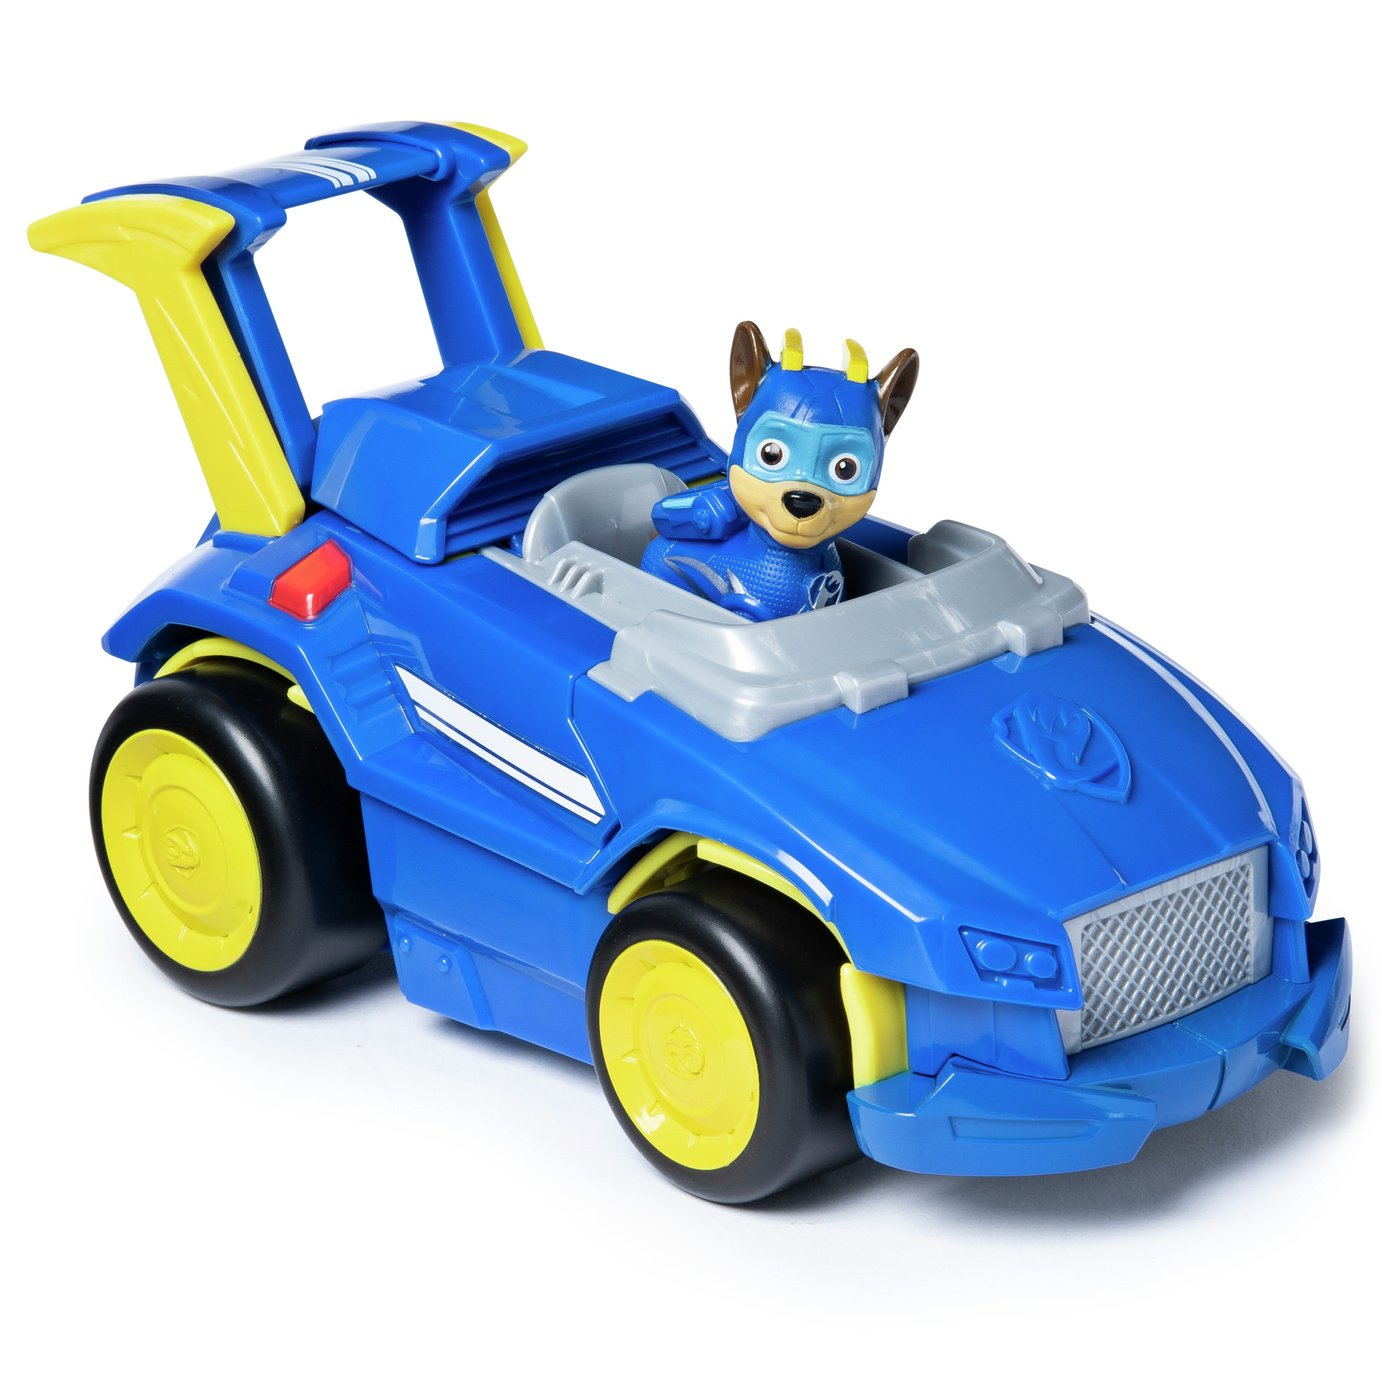 PAW Patrol Super Paws Chase's Powered Up Vehicle